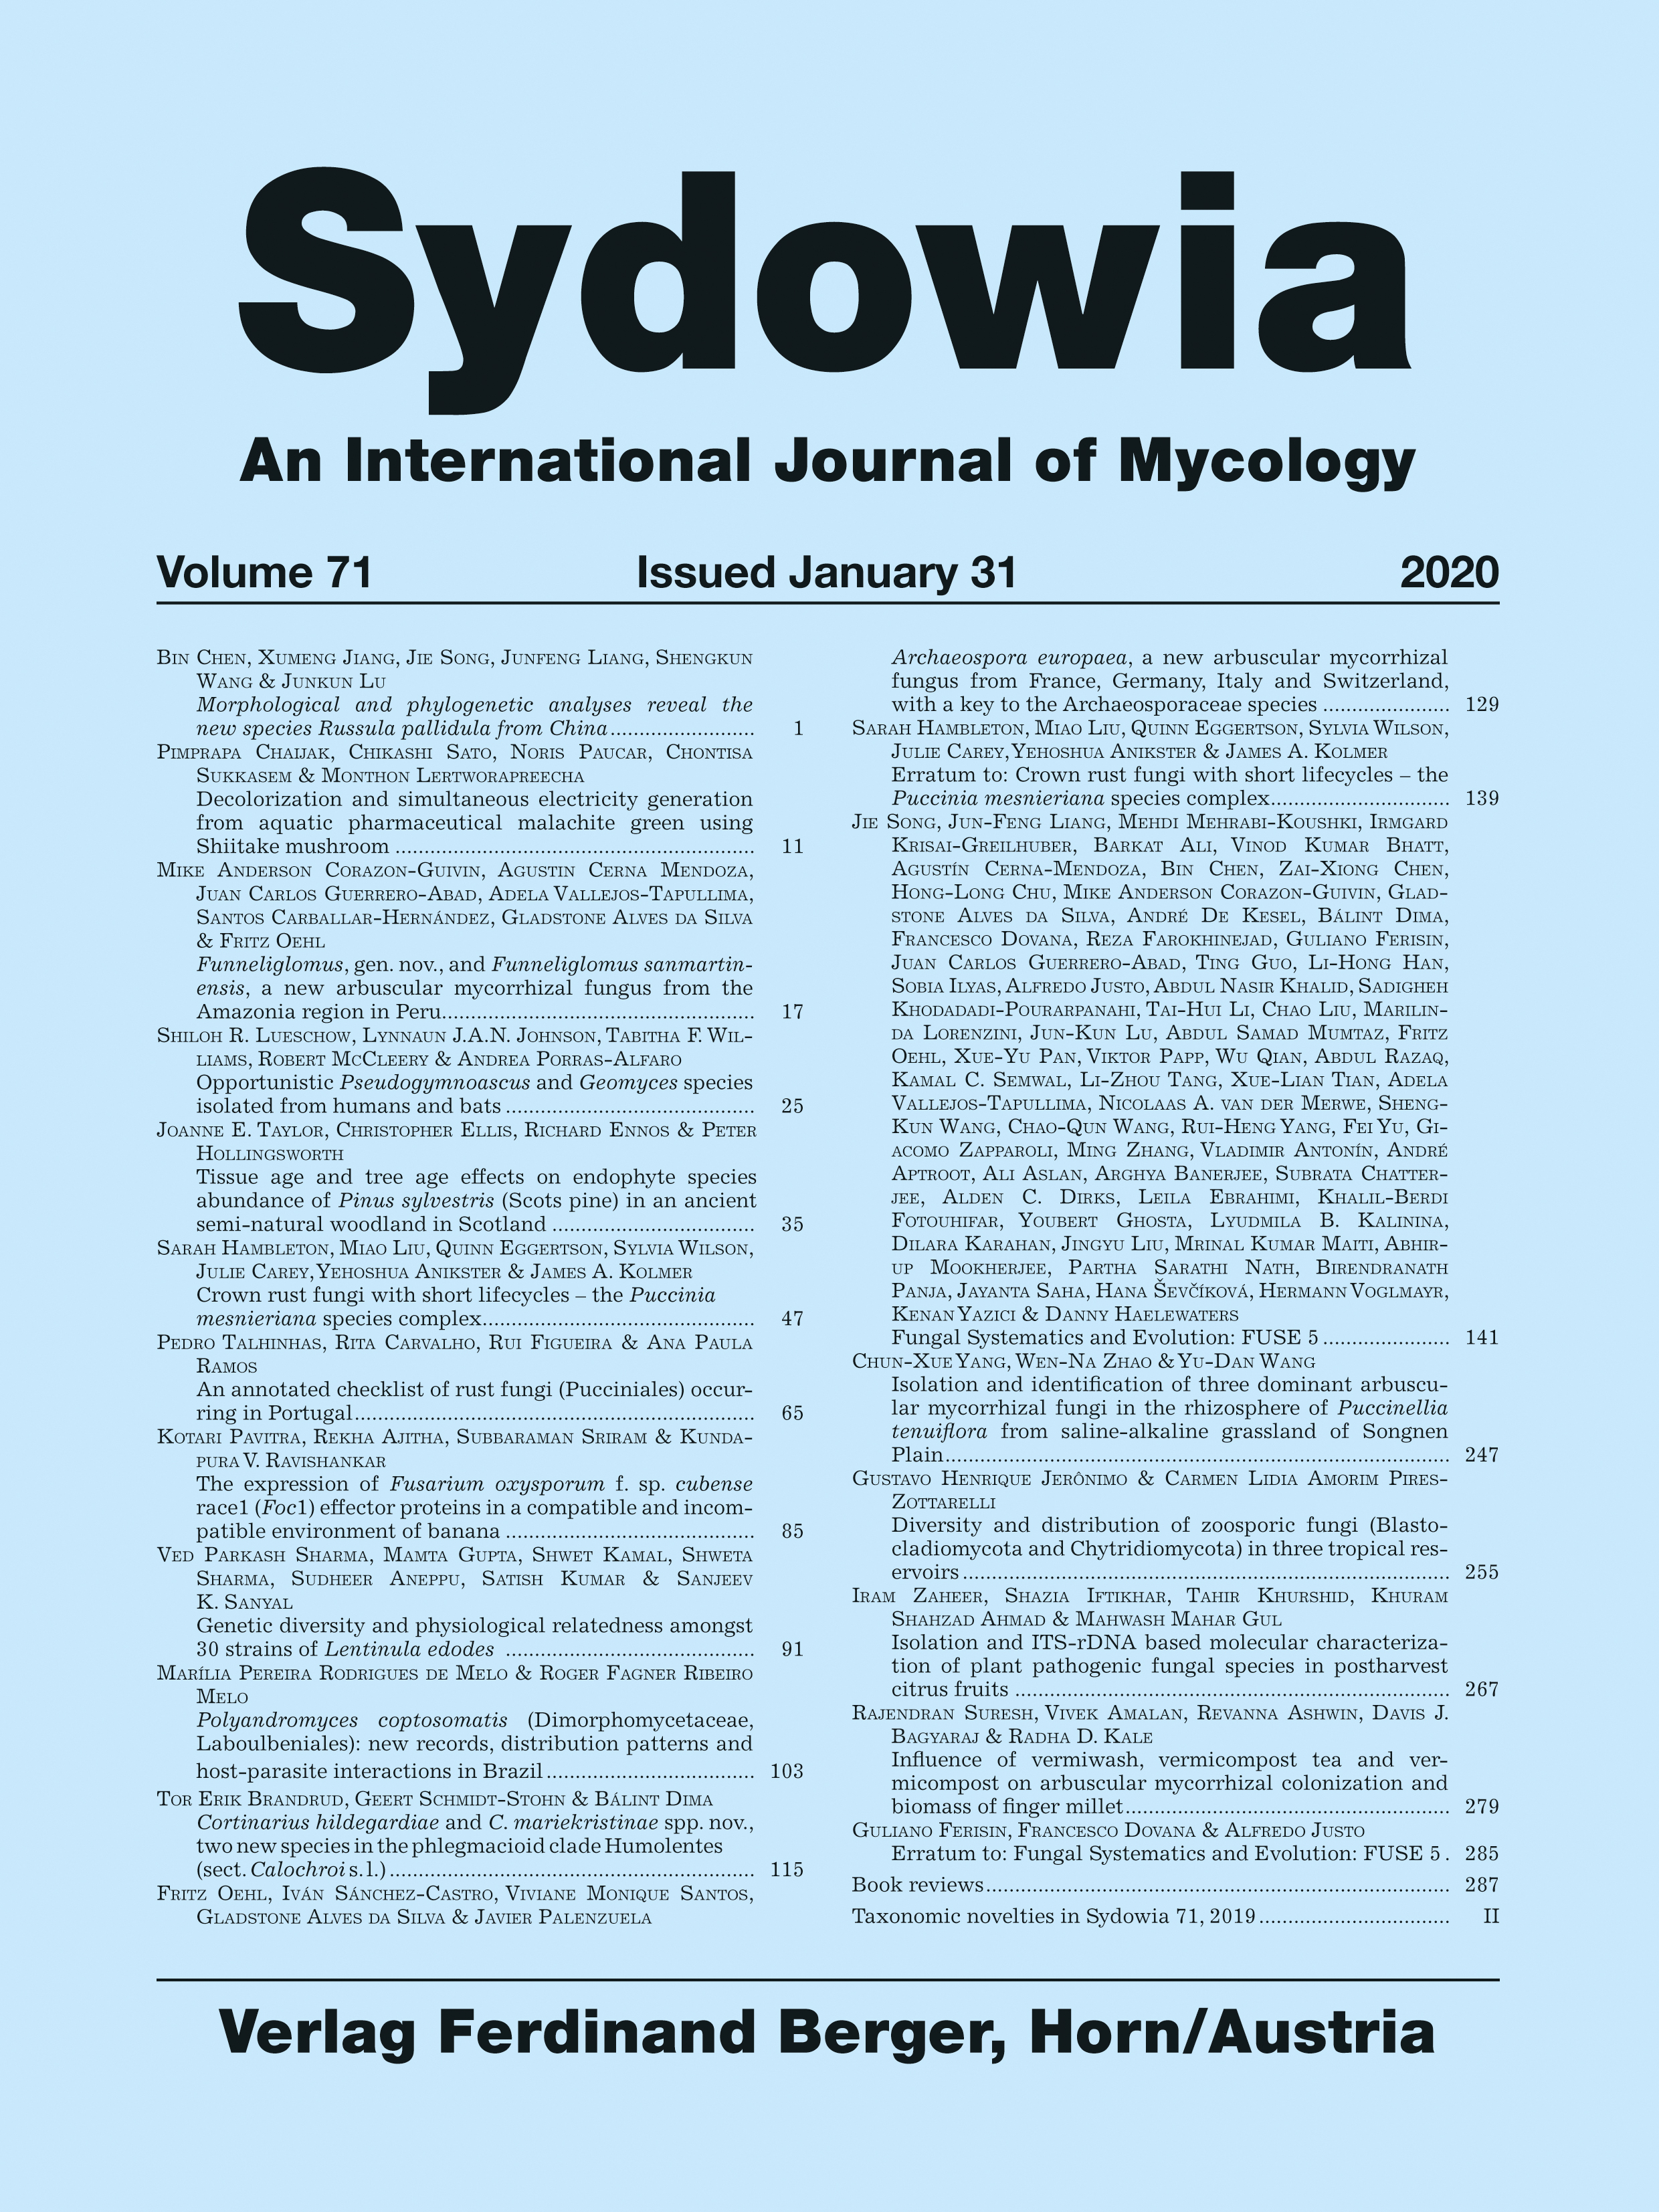 Sydowia Vol. 71 E-Book/S 285 OPEN ACCESS